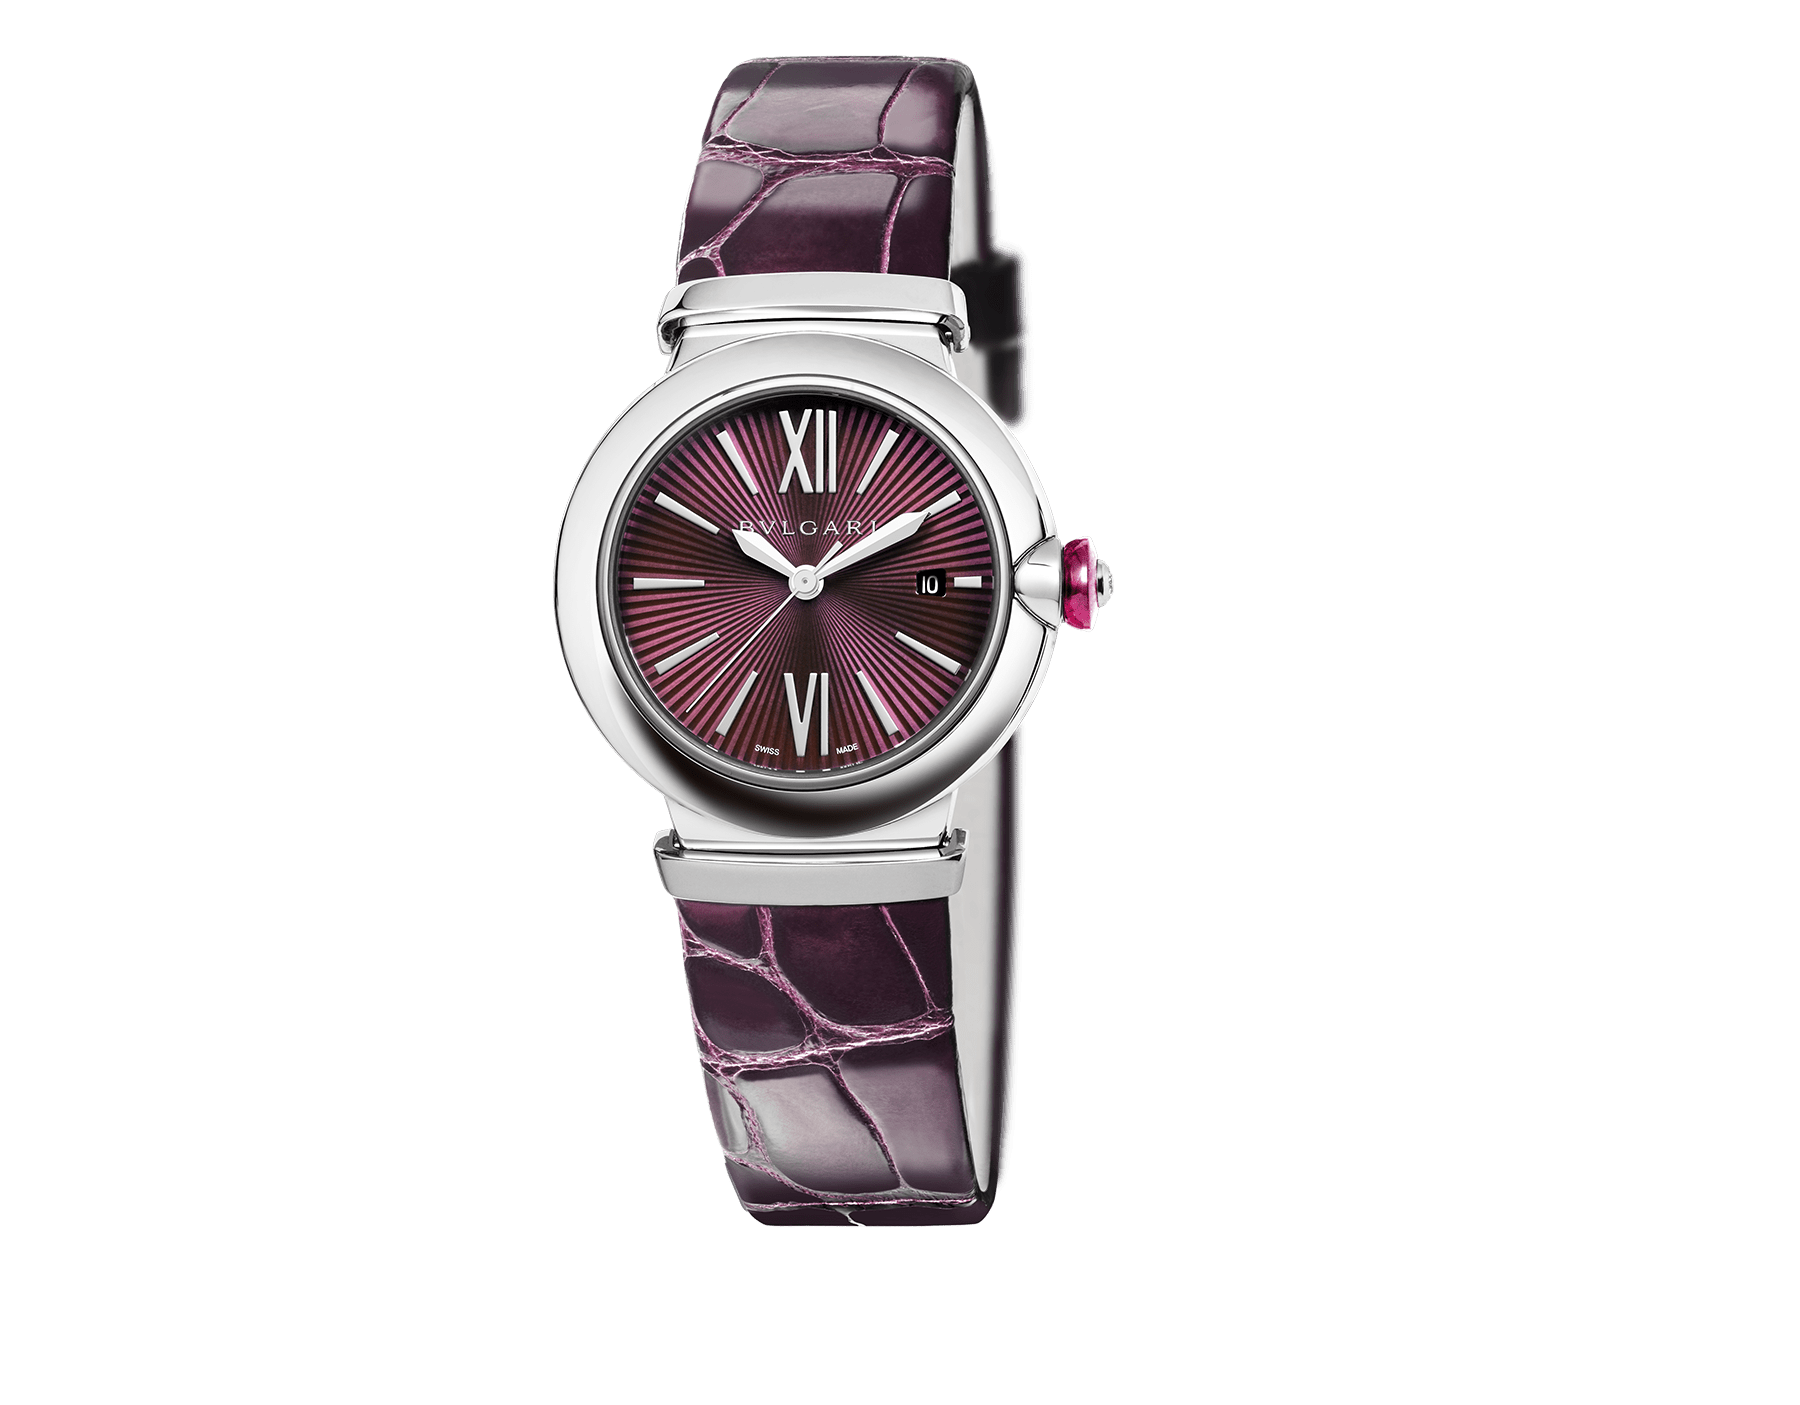 LVCEA watch with stainless steel case, violet dial and purple alligator bracelet. 102495 image 1